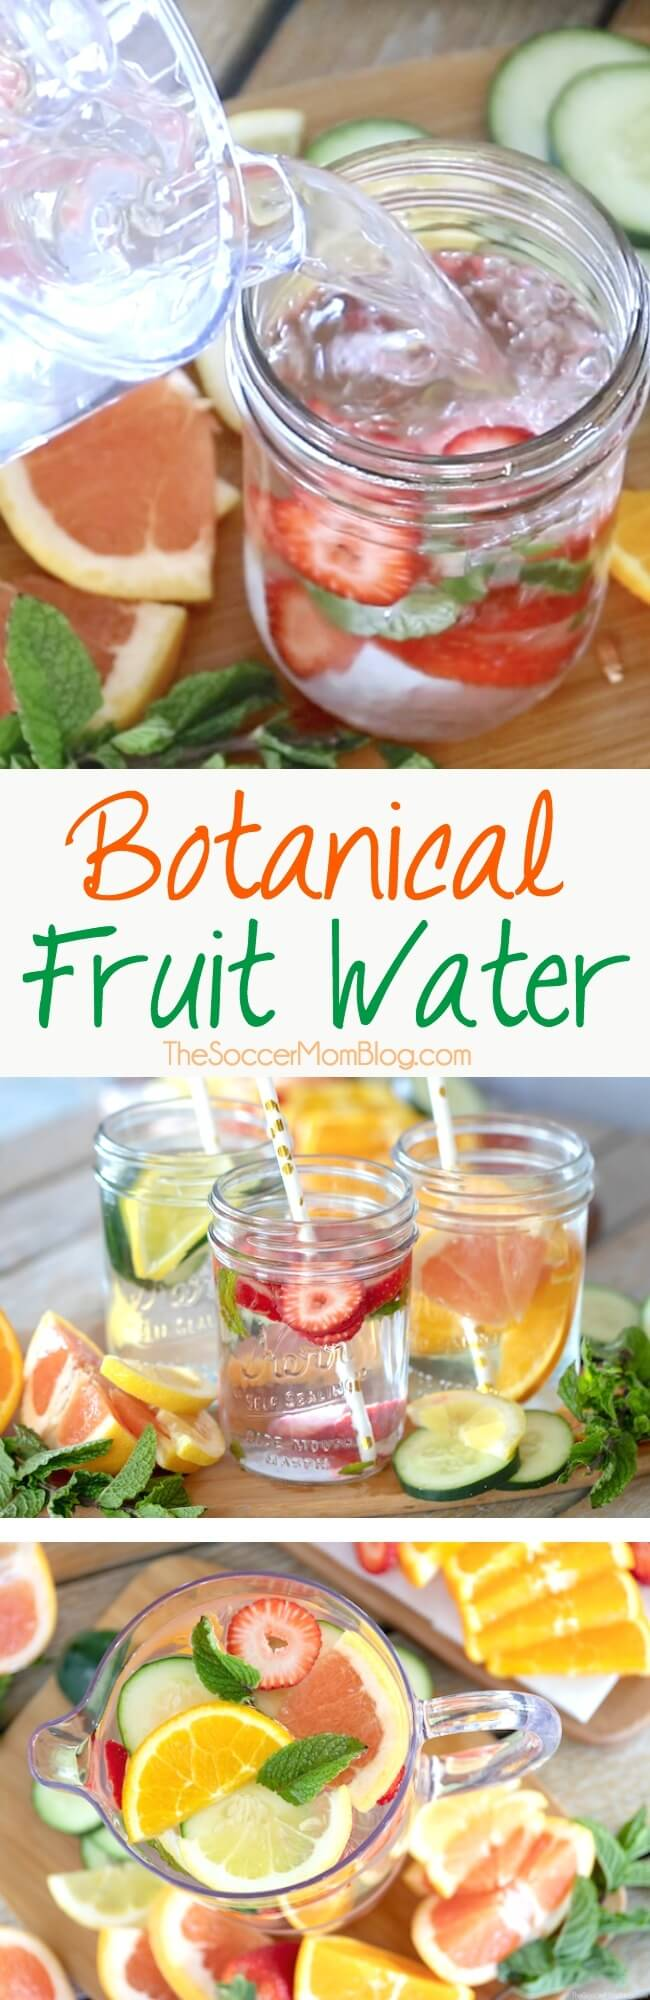 Give your body the healing benefits of botanicals: cleansing, detox, hydration. This simple fruit and herb infused water nourishes and refreshes.